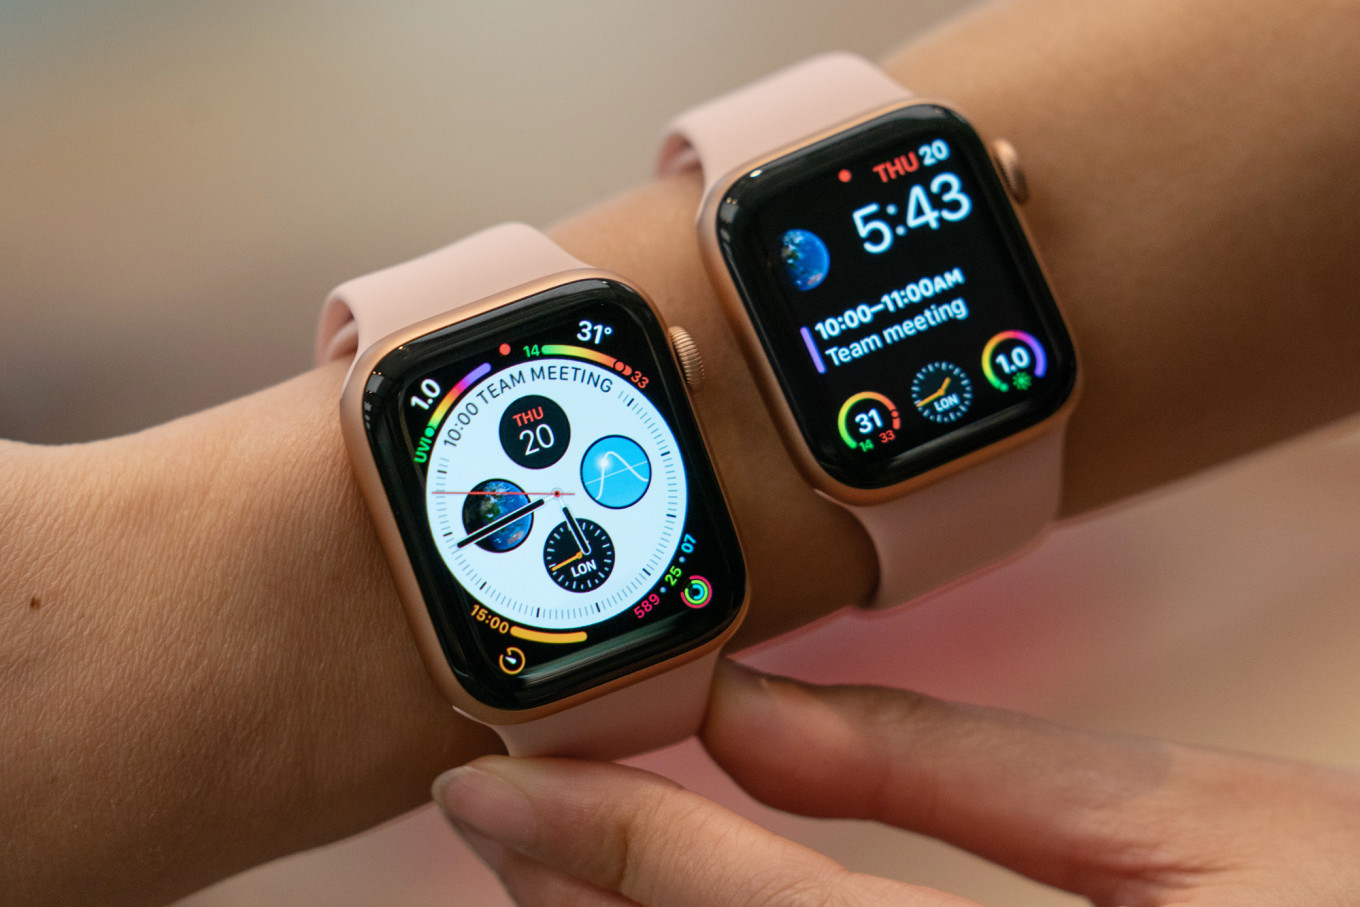 Massive study using Apple watch spots heart issues, with limits